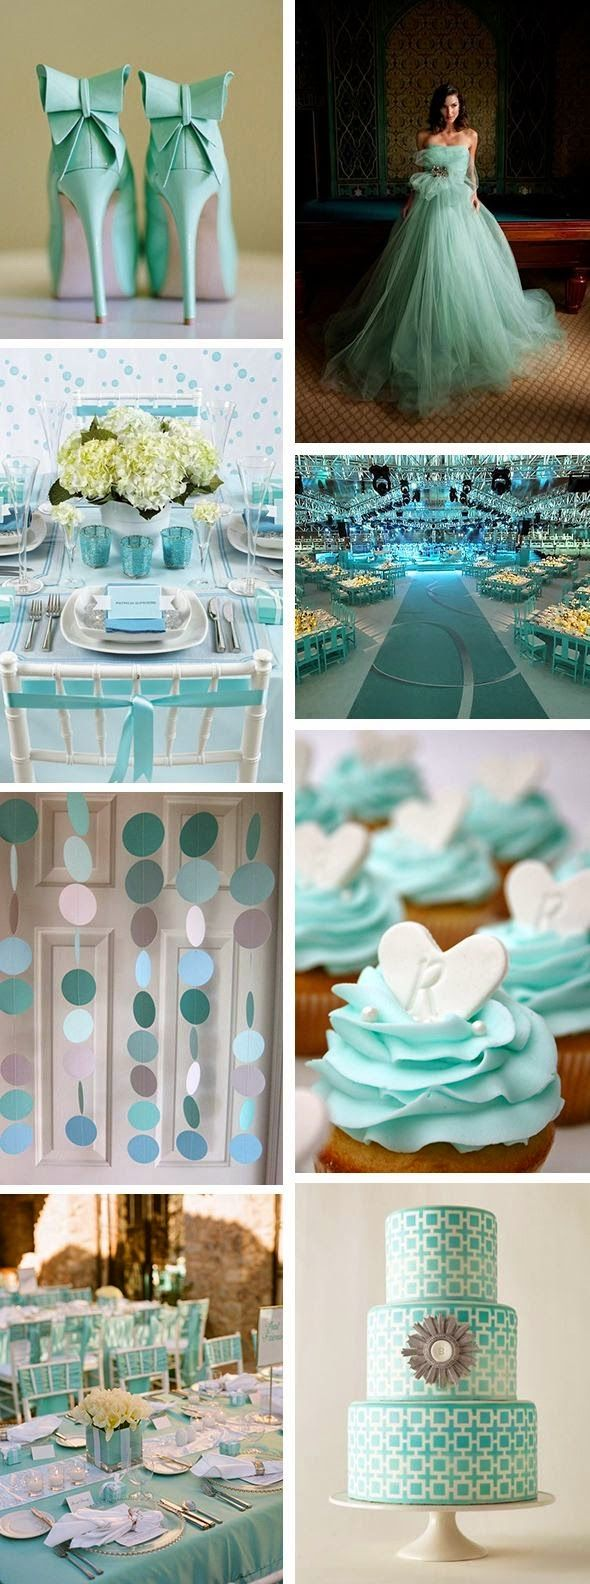 Light blue wedding decoration ideas  There isnut a woman around who doesnut recognize the exact shade of